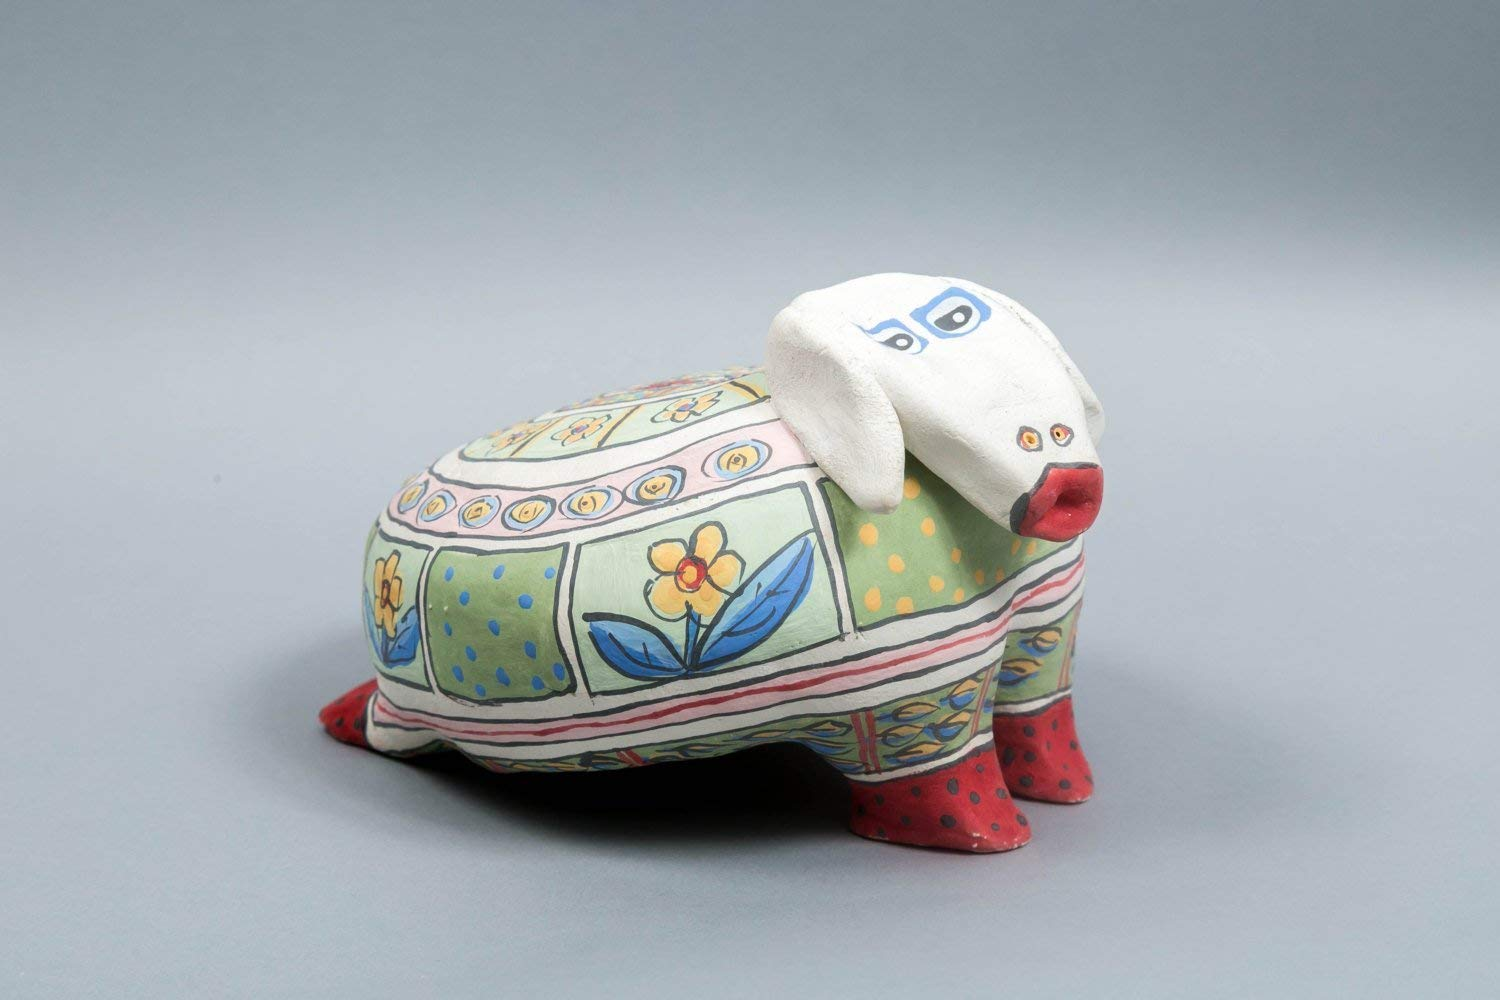 Artisan Handmade Ceramic Animal Statue, Colorful Cute Spring Sheep Figurine, Funny Outdoor and Indoor Sculpture Ornament Decor for Garden and Home